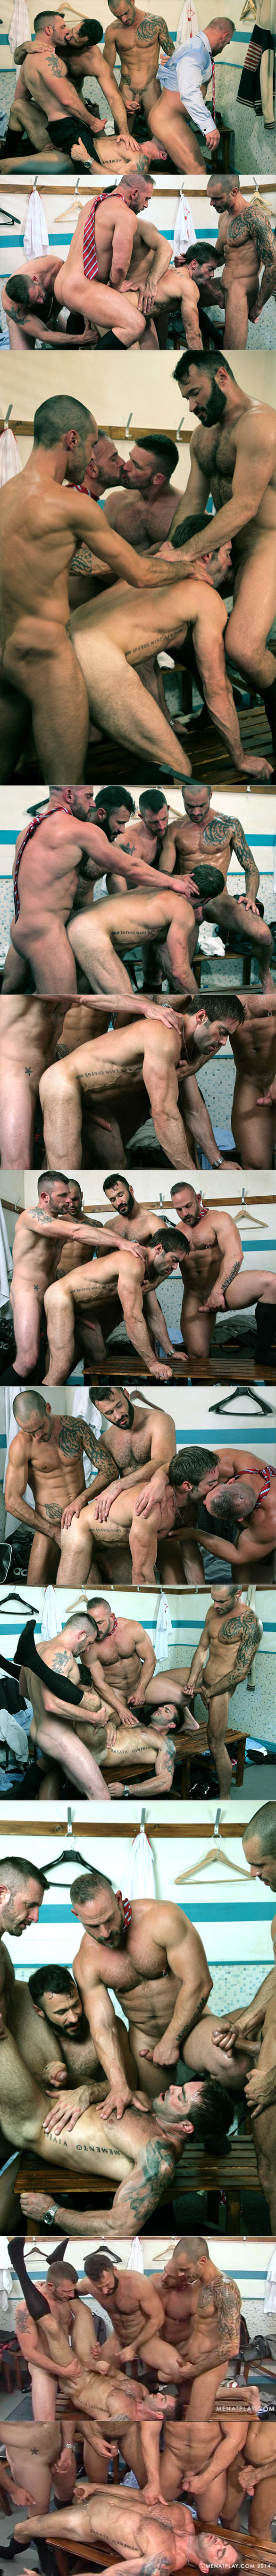 "MenAtPlay: Jake Genesis, Issac Jones, Wilfried Knight, Samuel Colt and Morgan Black in ""The Game"""